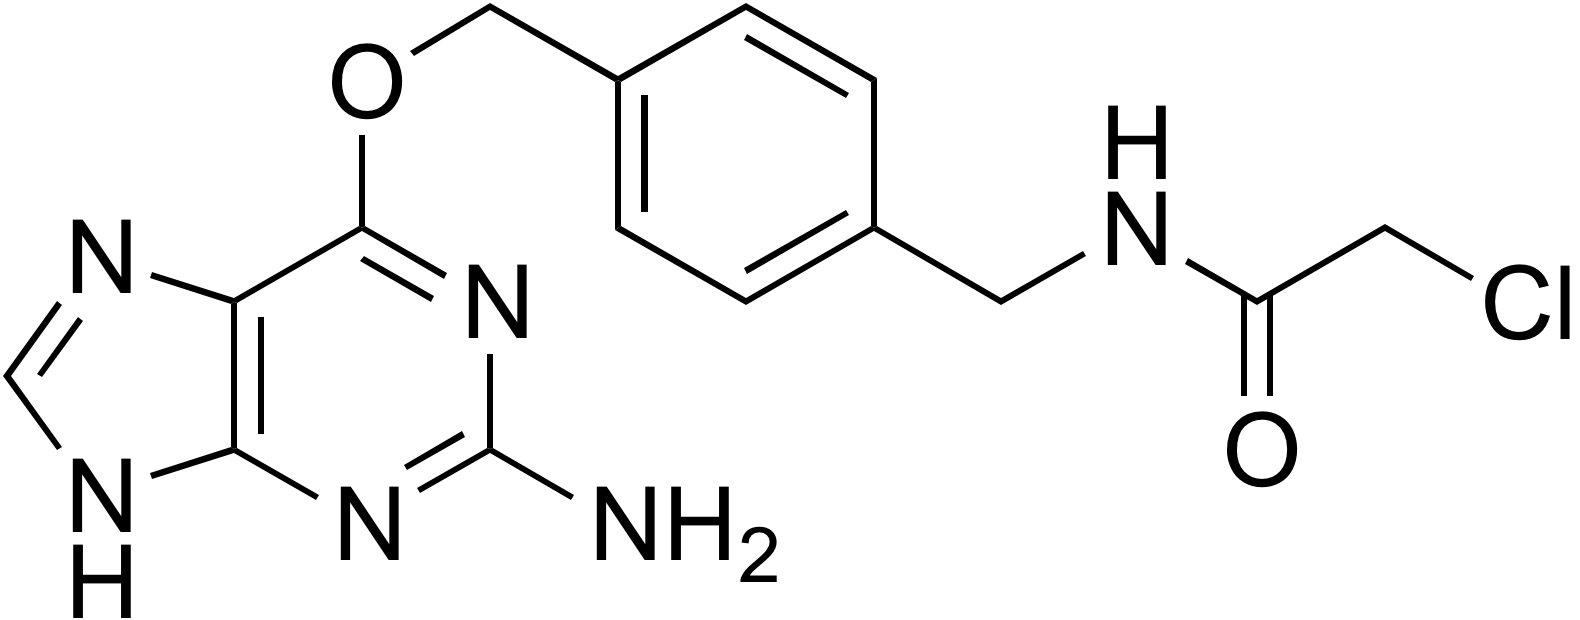 N-(4-((2-Amino-9H-purin-6-yloxy)methyl)benzyl)-2-chloroacetamide